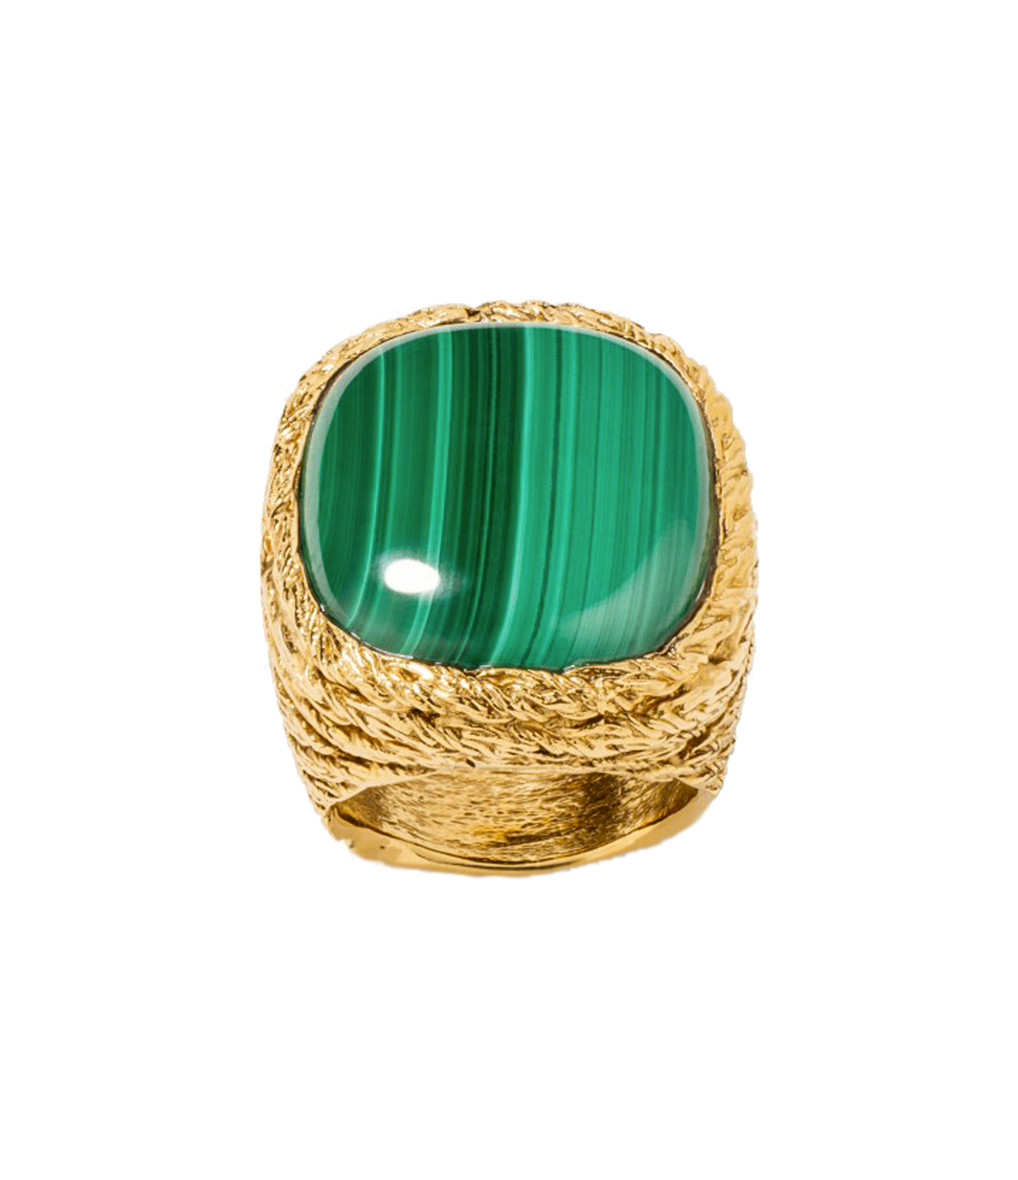 AURELIE BIDERMANN - Chevaliere Miki Dora Malachite